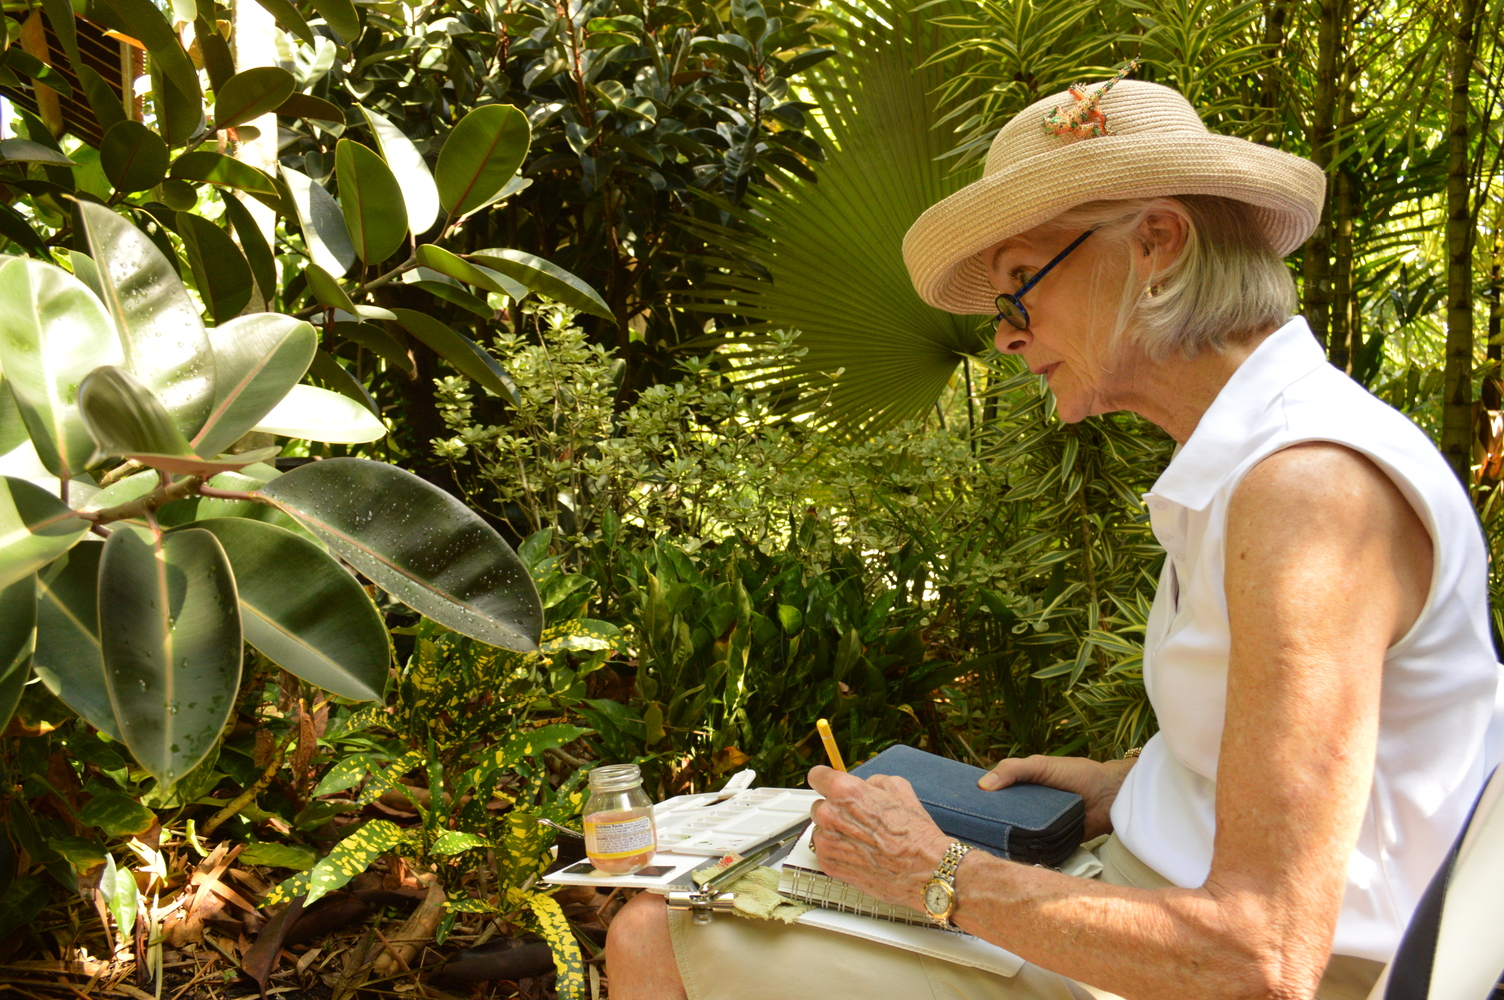 A person looking at a plant with concentration while holding a notebook and drawing implement